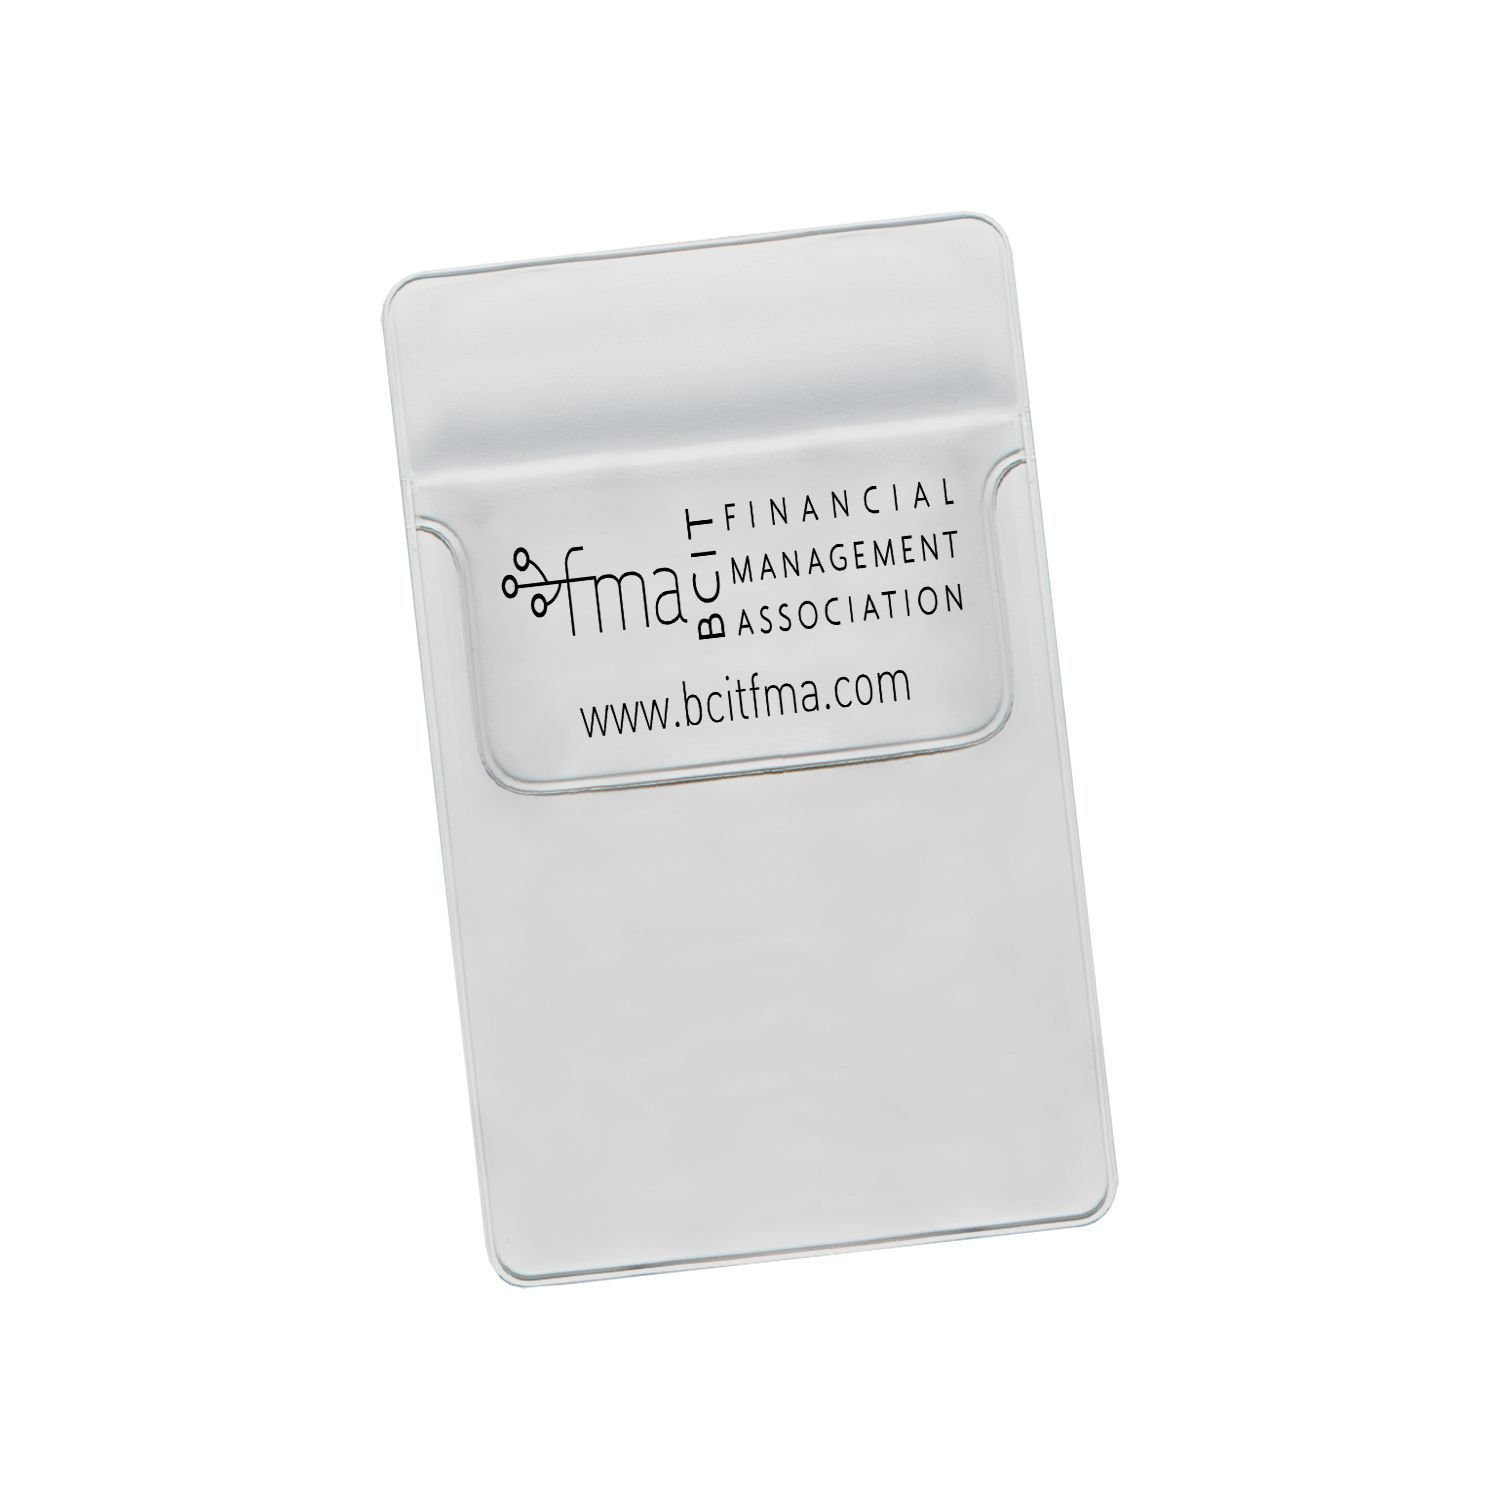 Promos With Imprint Personalized Pocket Protector 1 3/4 Flap -600 per Package- Bulk